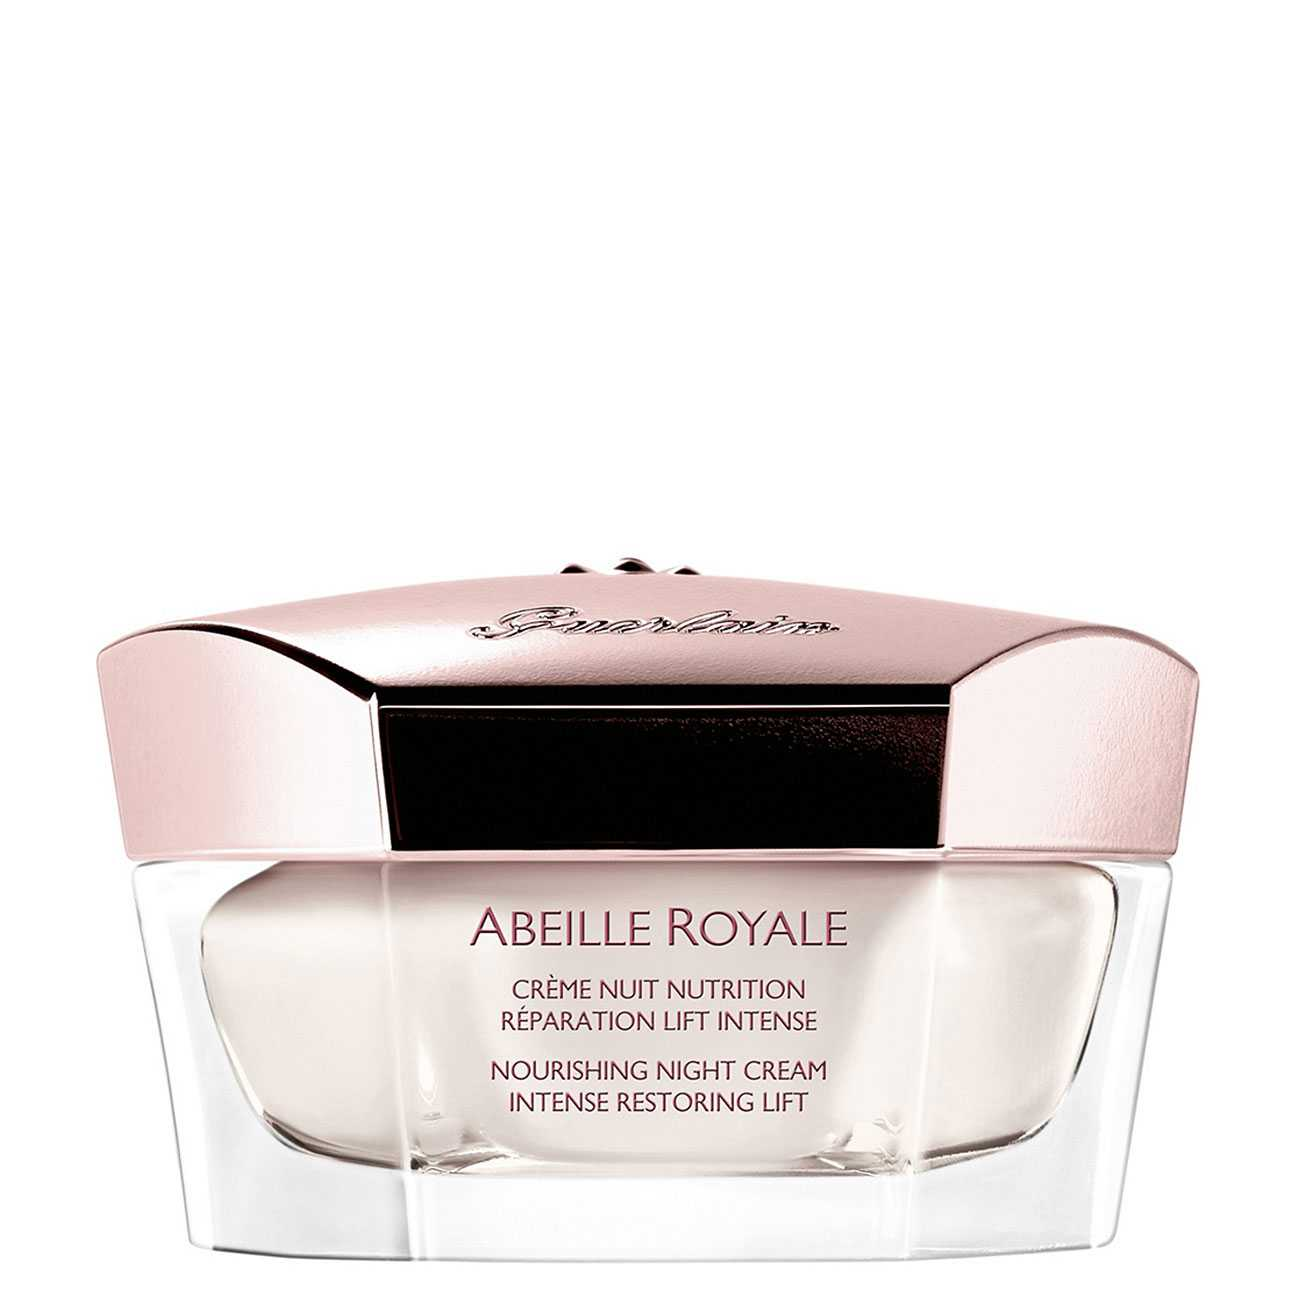 Abeille Royale Night Cream 50 Ml Guerlain imagine 2021 bestvalue.eu